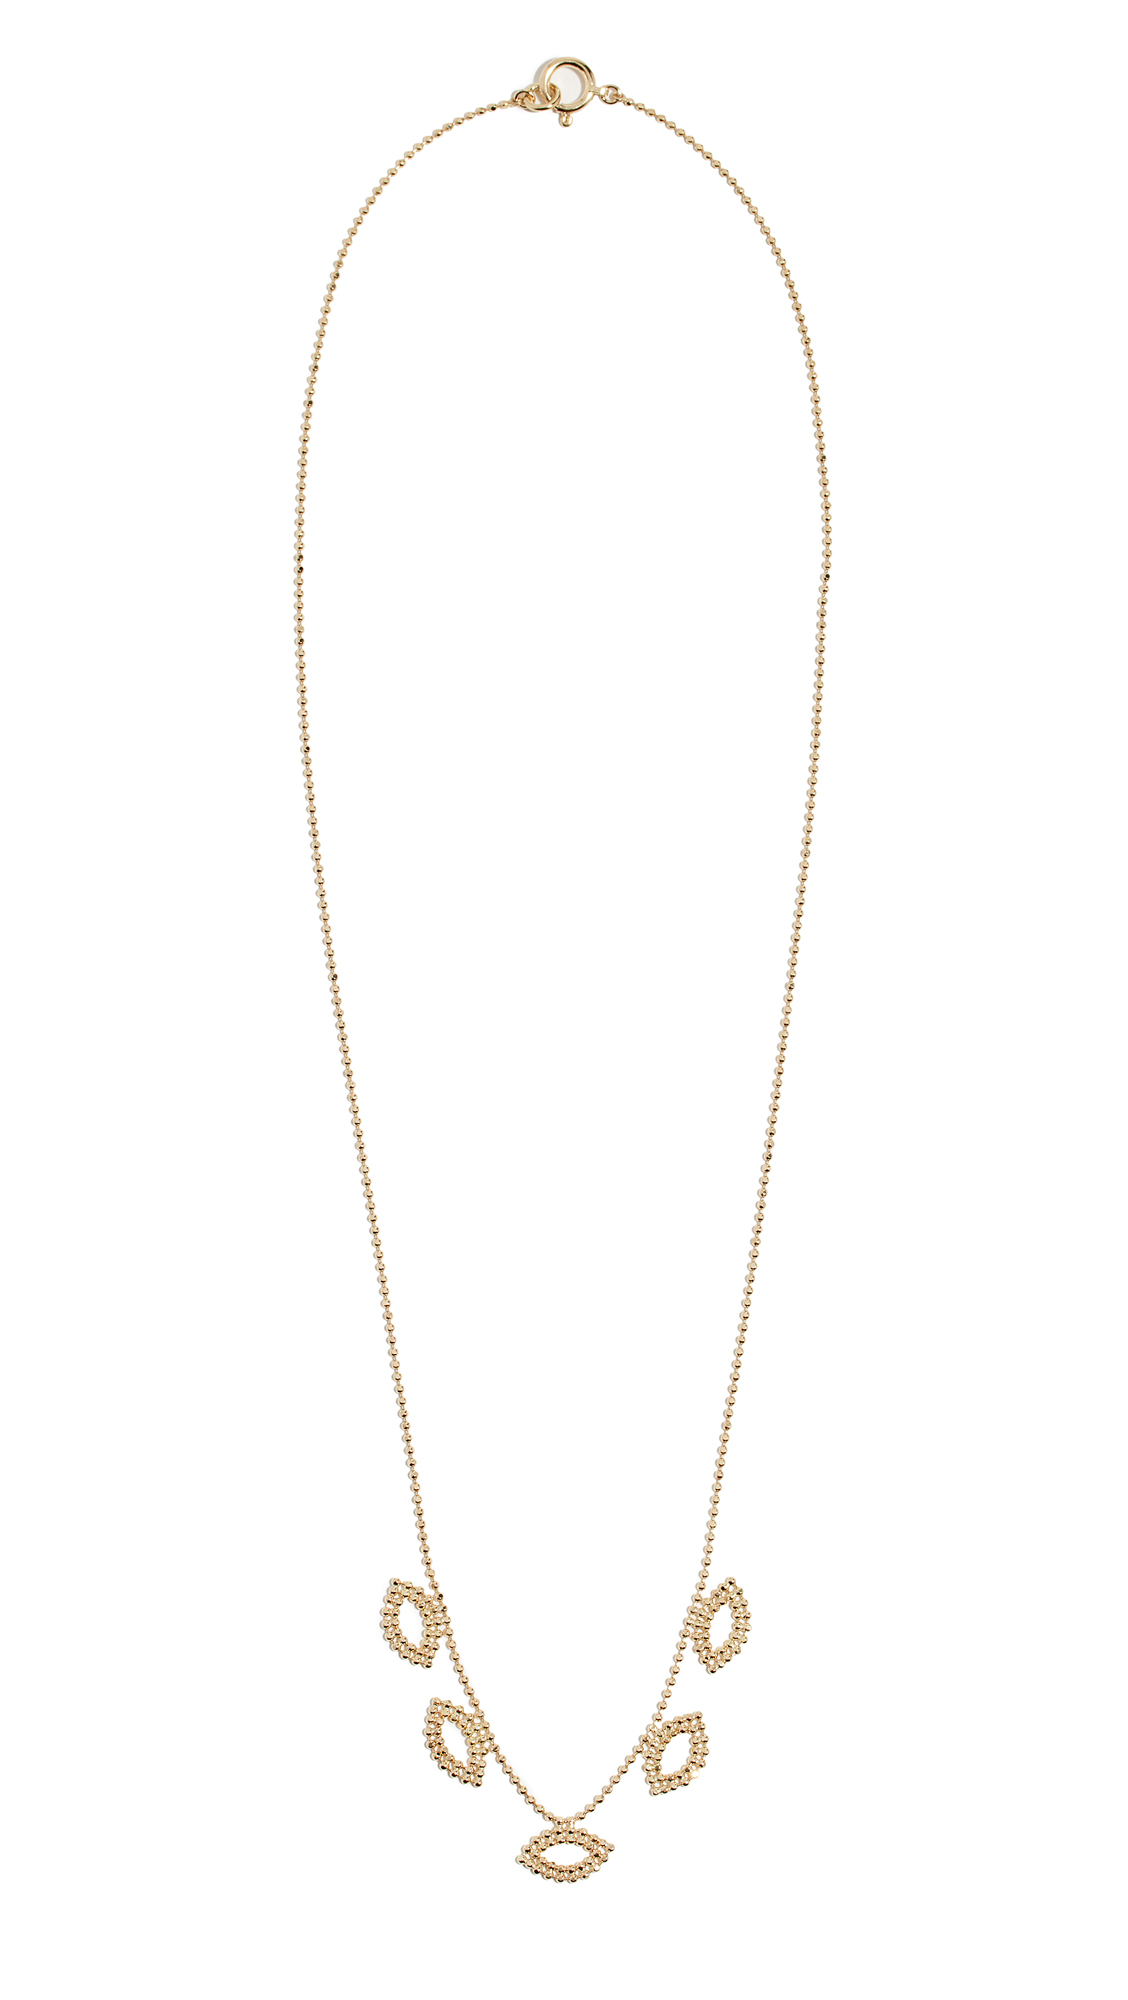 LUCY FOLK Golden Eye Necklace in Yellow Gold